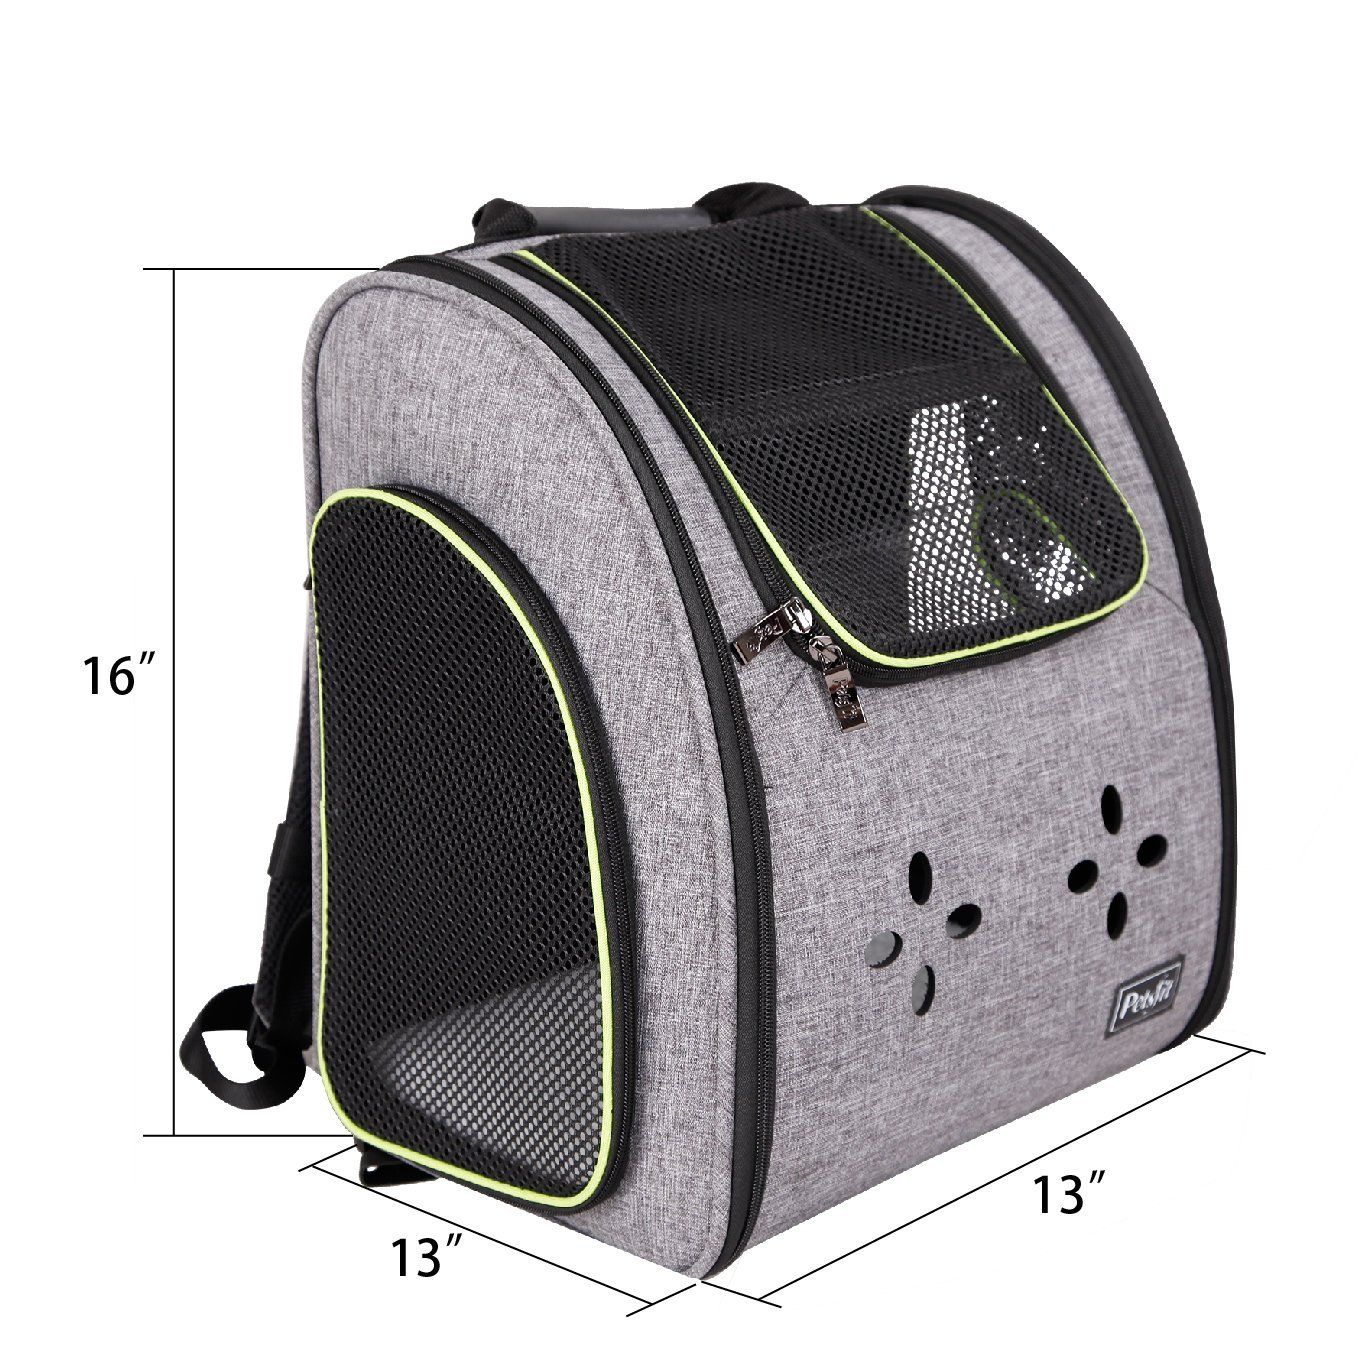 Pet Carrier Bag Amazon Amazon Petsfit Adjustable Front Carrier For Dog Or Cat